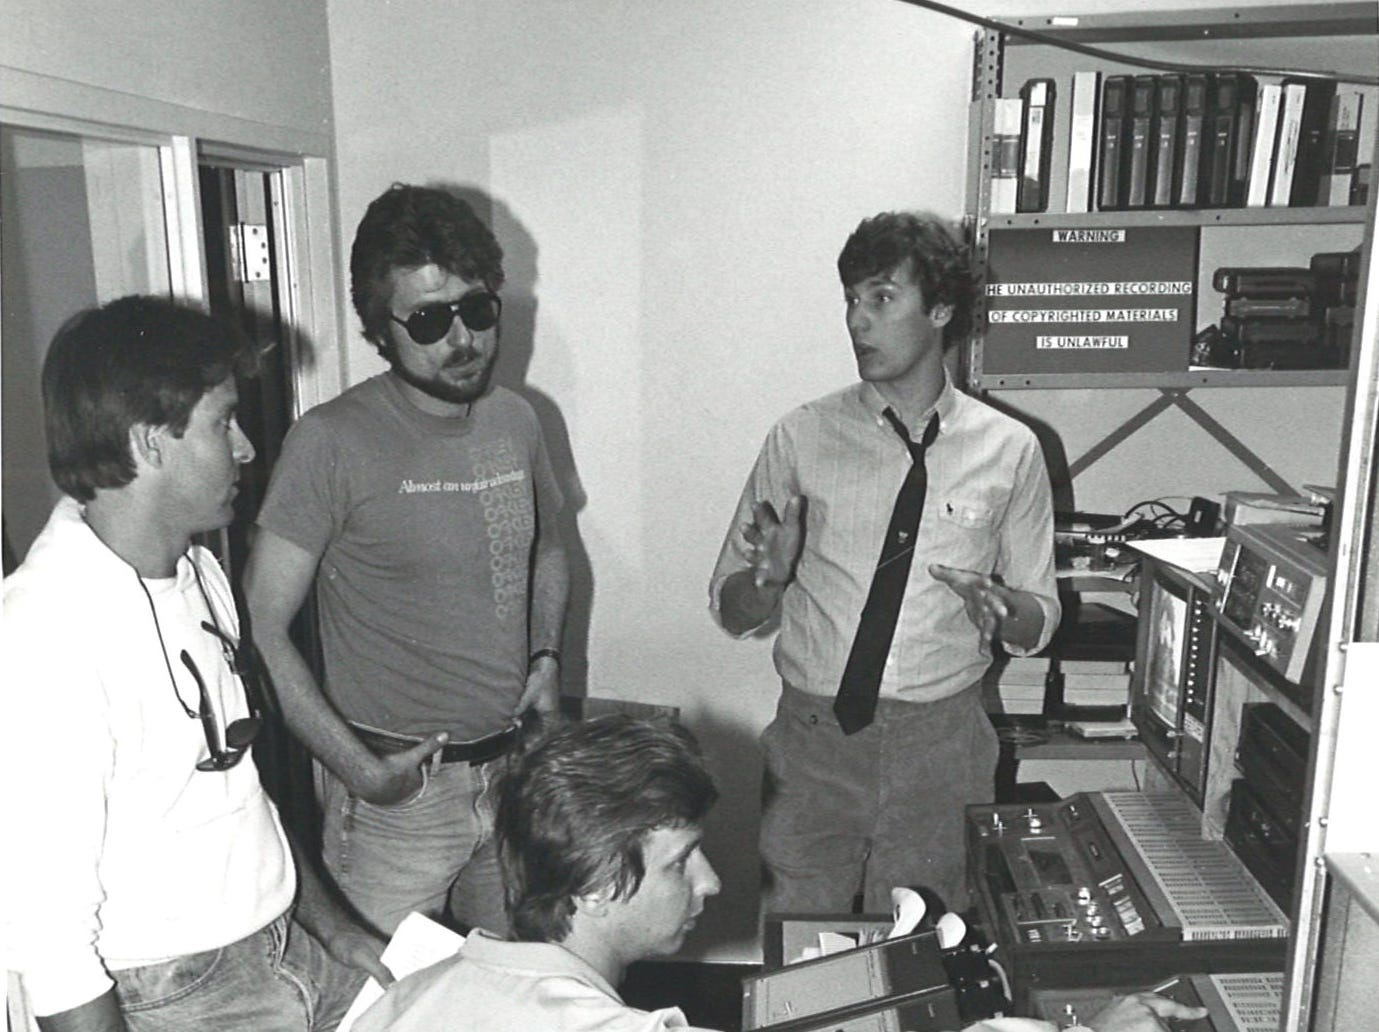 Planning a show for the new SwampGas Theatre are communications majors Paul Isham (left to right), Greg Spaulding, Gary Kline and Jim Short. The offbeat extracurricular group at Corpus Christi State University got the name because of the stench of driving by the Oso Bay area on the way to the school.